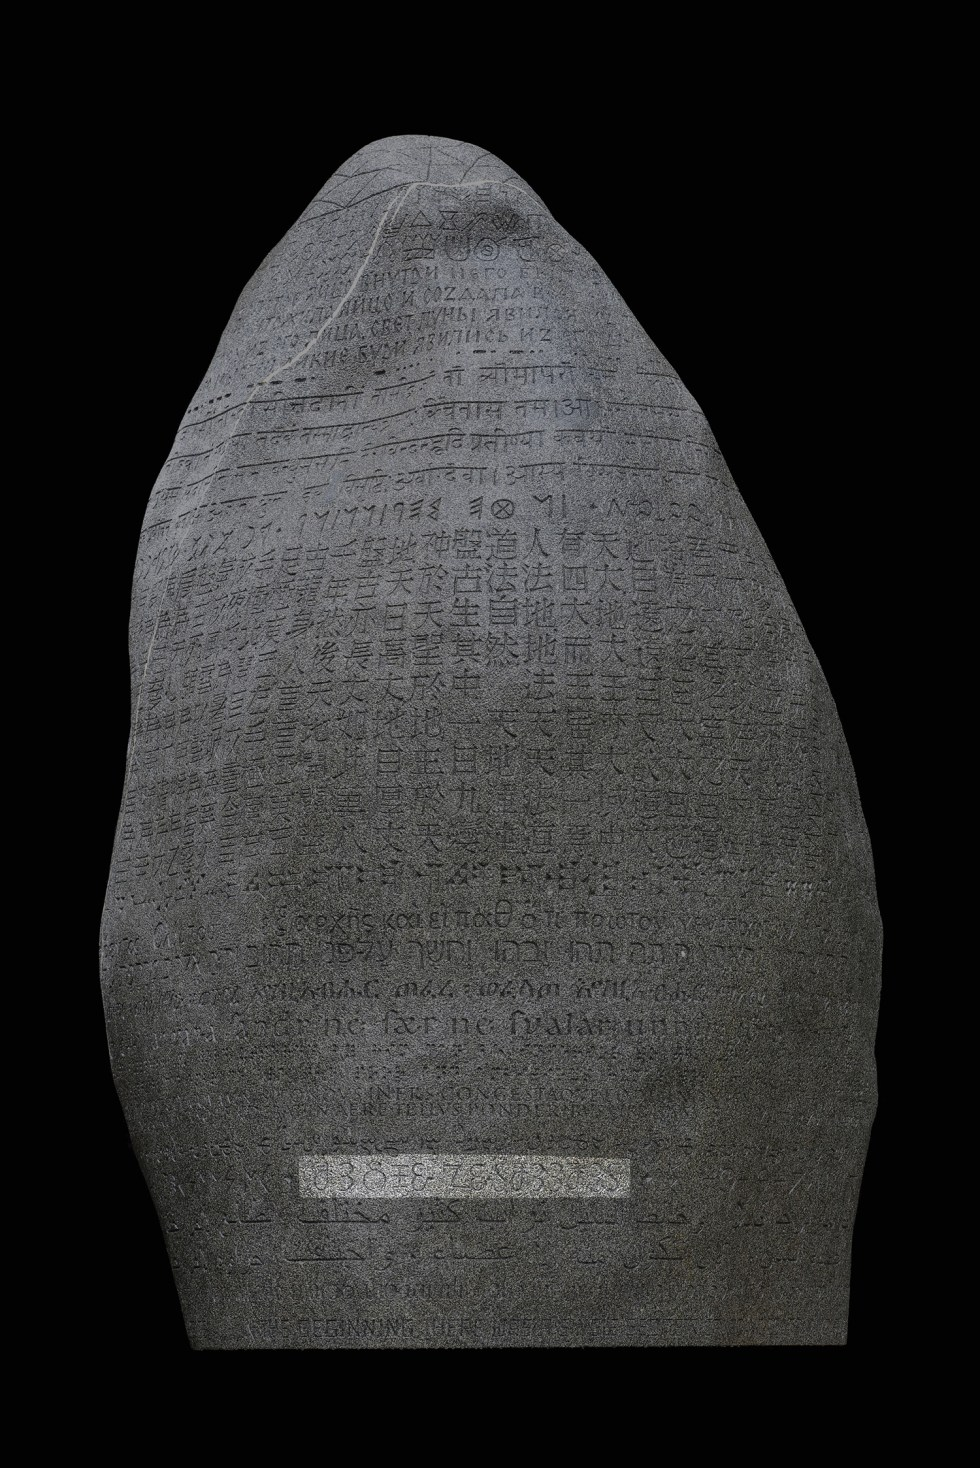 """The One and The Many"" is a 24-tonne sculpted granite boulder by artist Peter Randall-Page inscribed with many of the world's scripts and symbols. It includes Bassa Vah, an alphabet for writing the Bassa language of Liberia (highlighted in light grey), among many others."